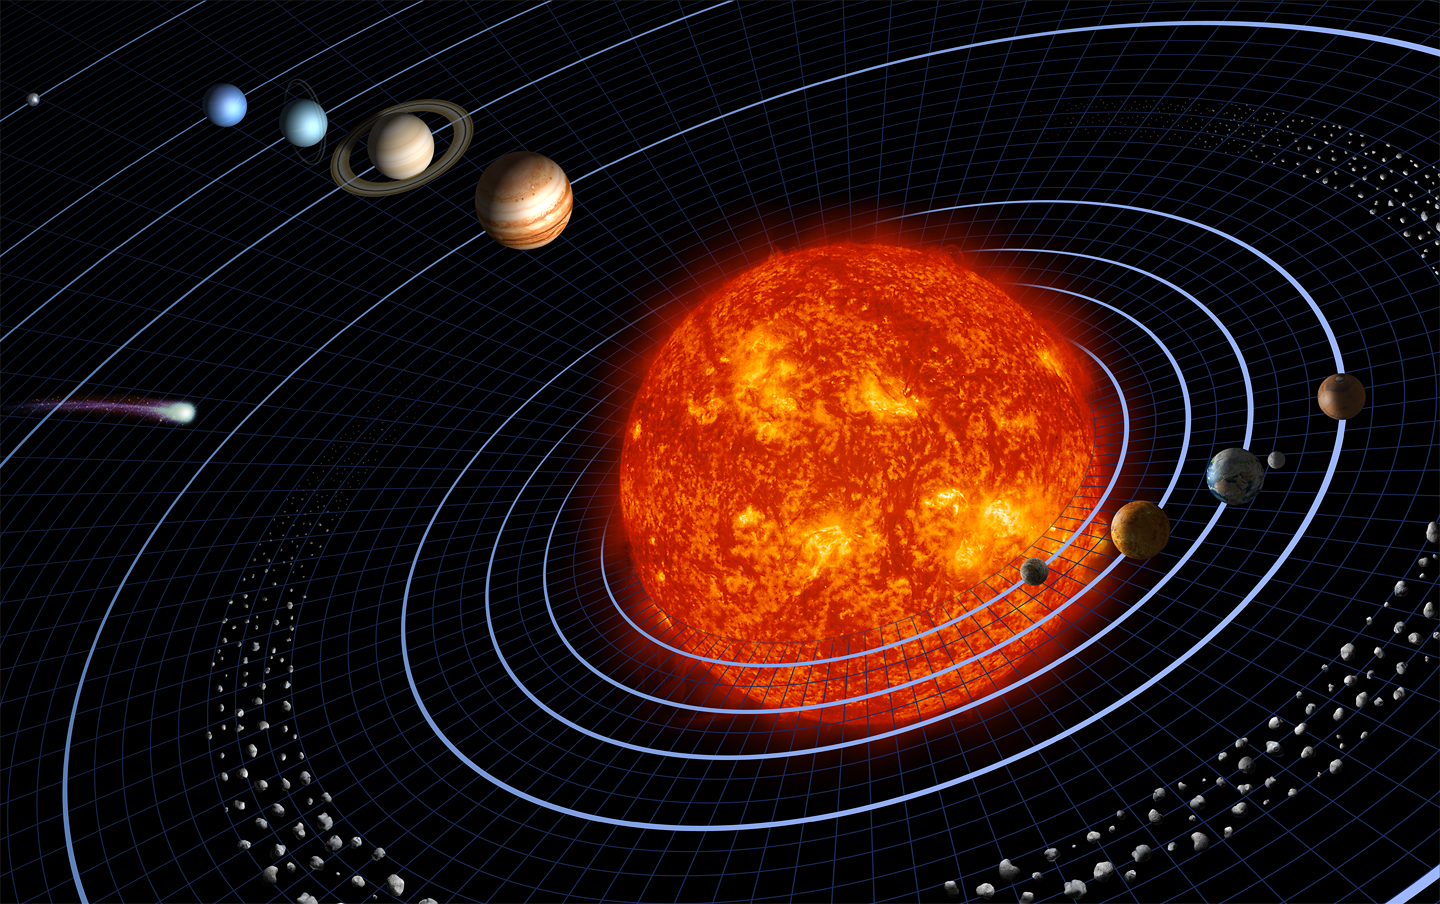 artist rendition of solar system bodies not to scale originally ...